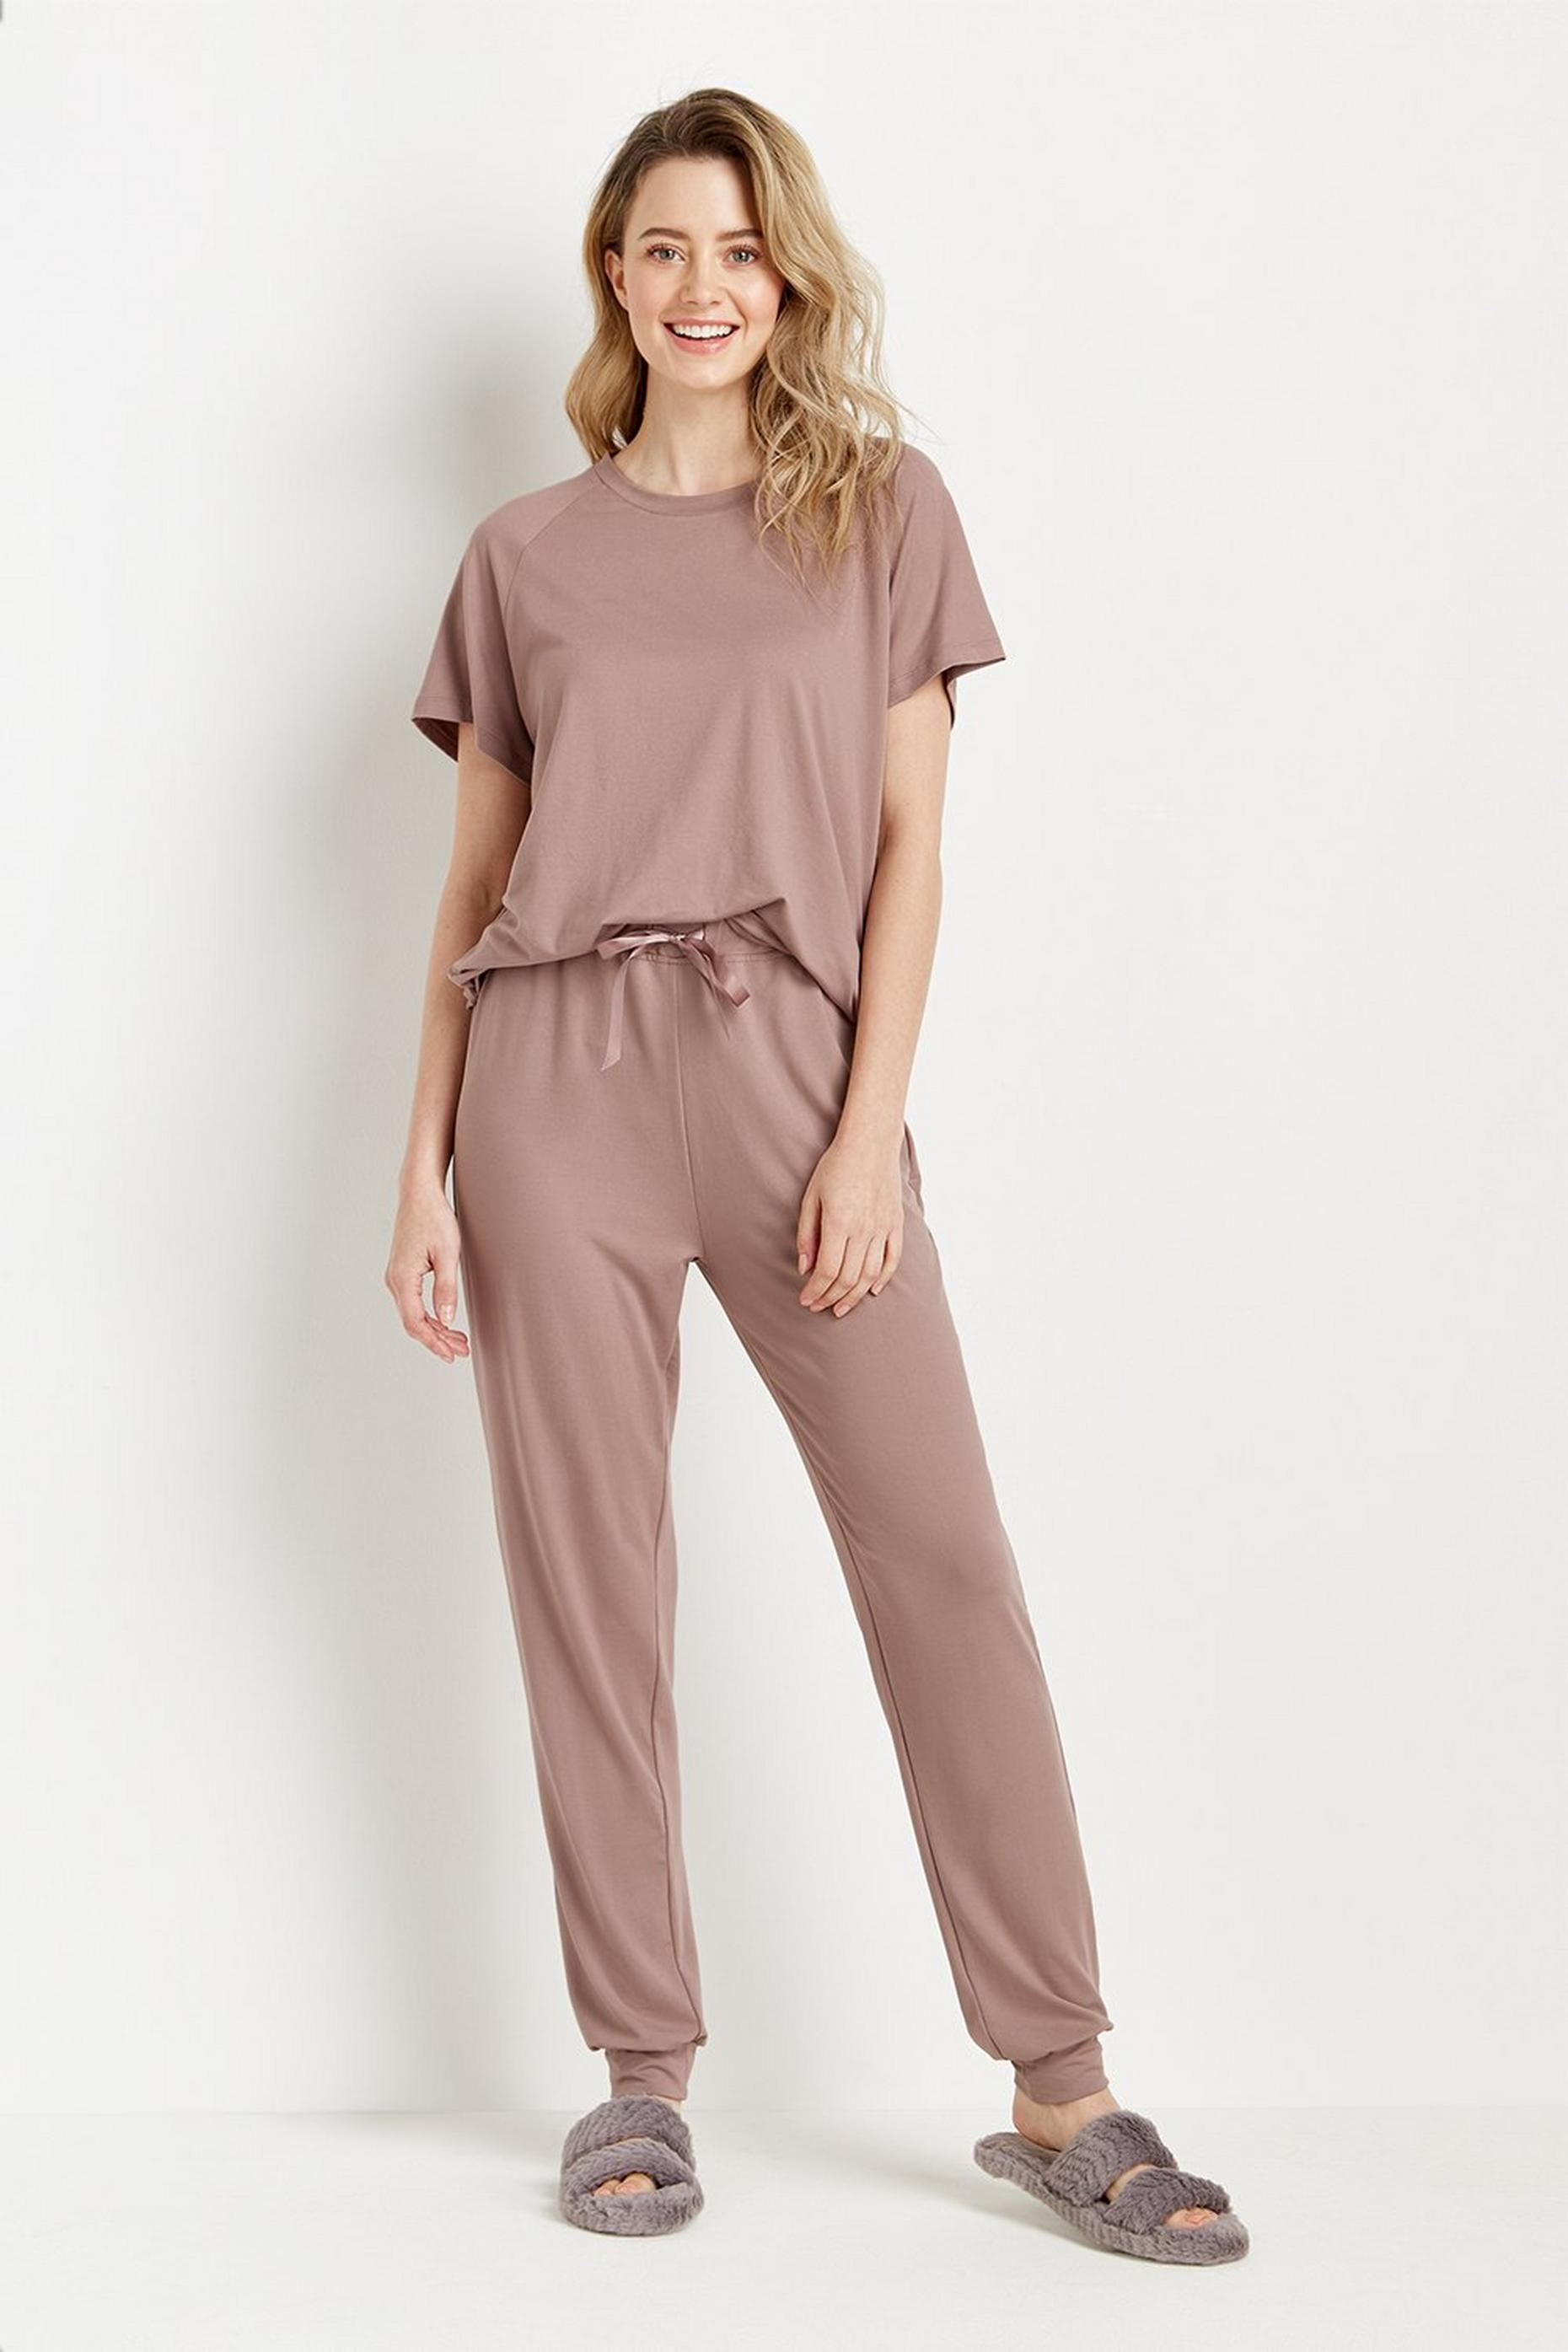 Loungeable Short Sleeve Top & Jogger Pj Set